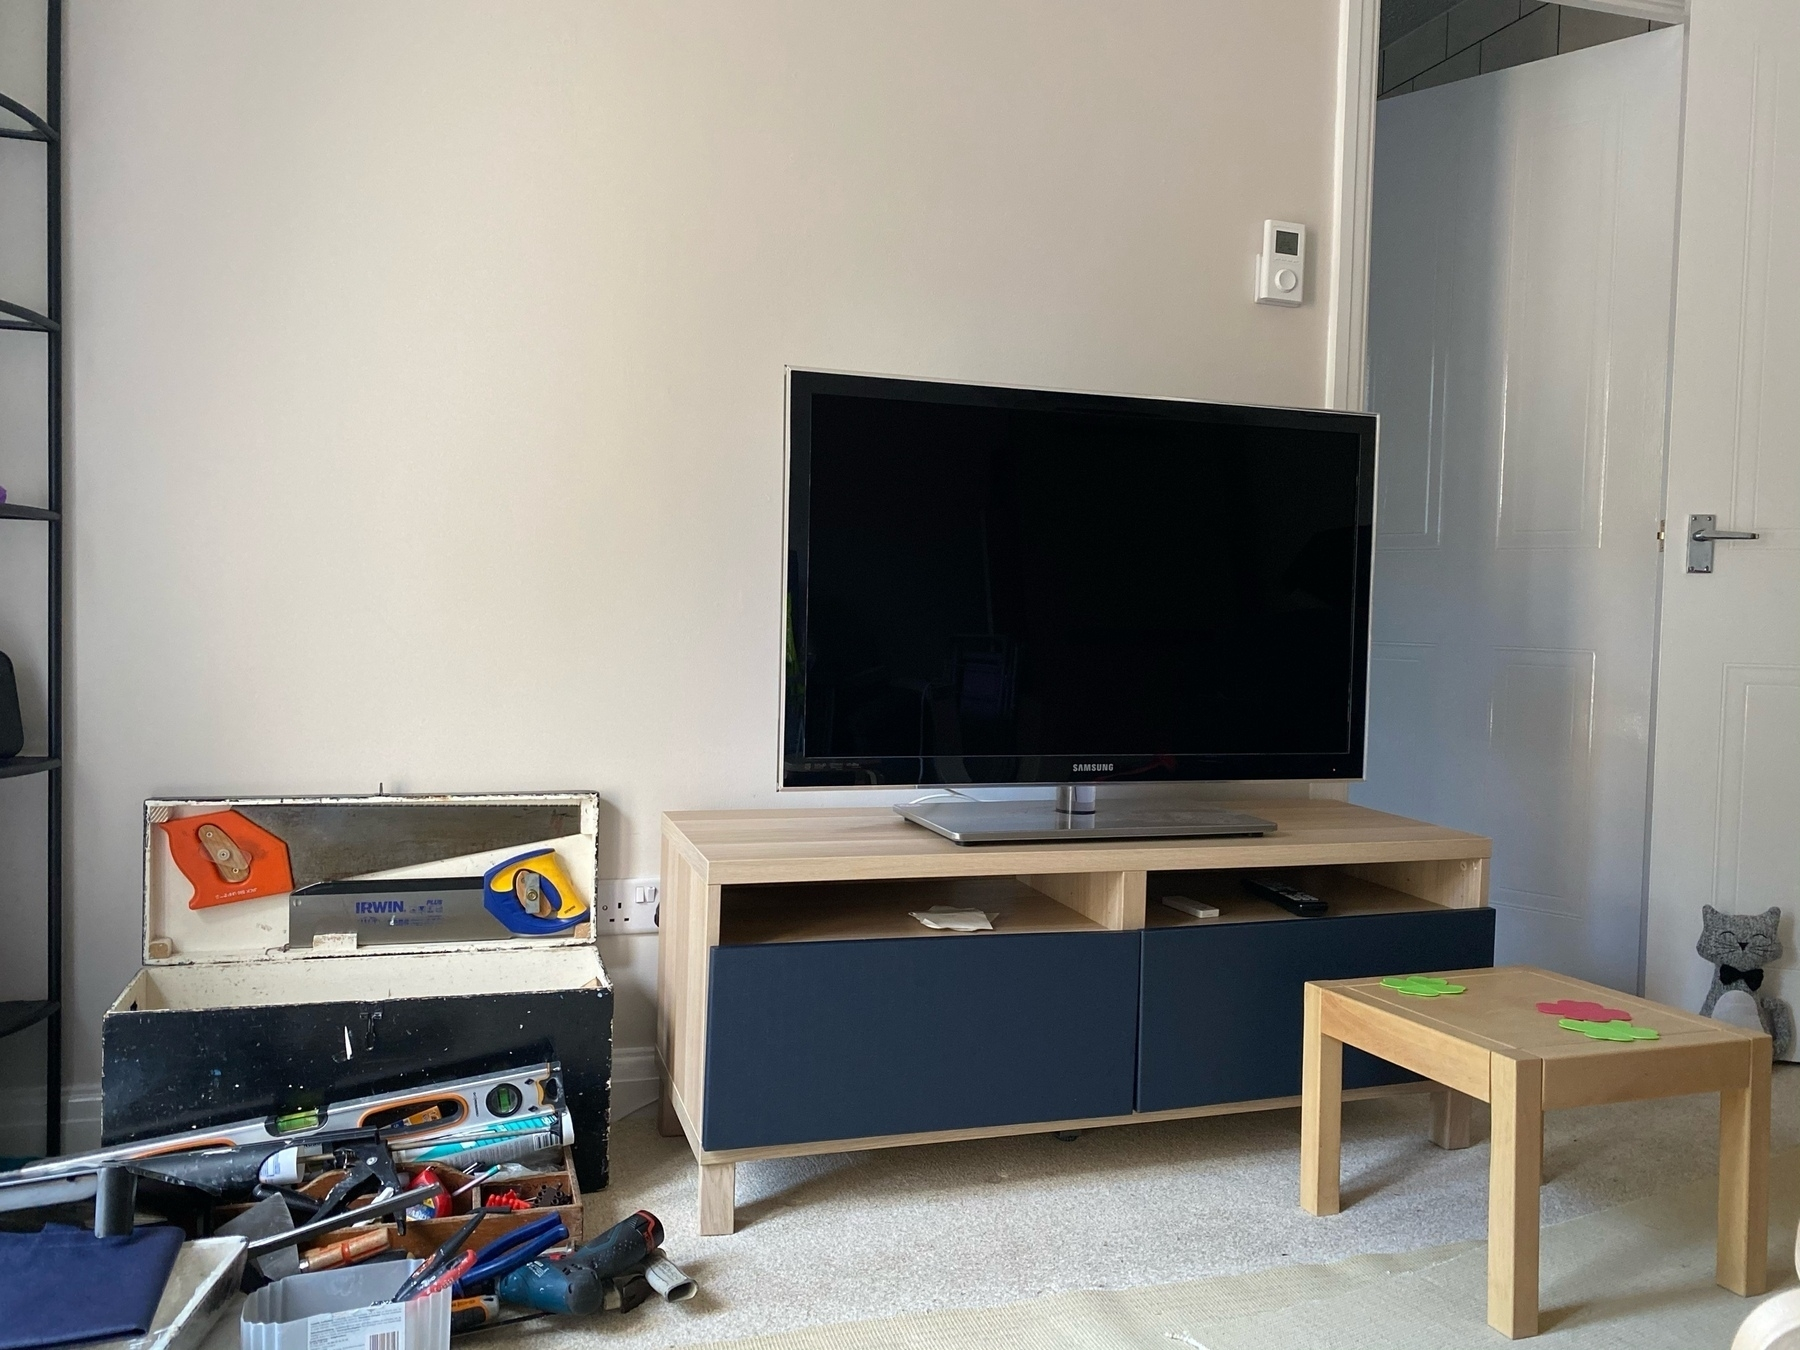 IKEA Besta TV unit with navy blue drawer fronts, TV on top. large black toolbox on the left with 2 saws in the lid.